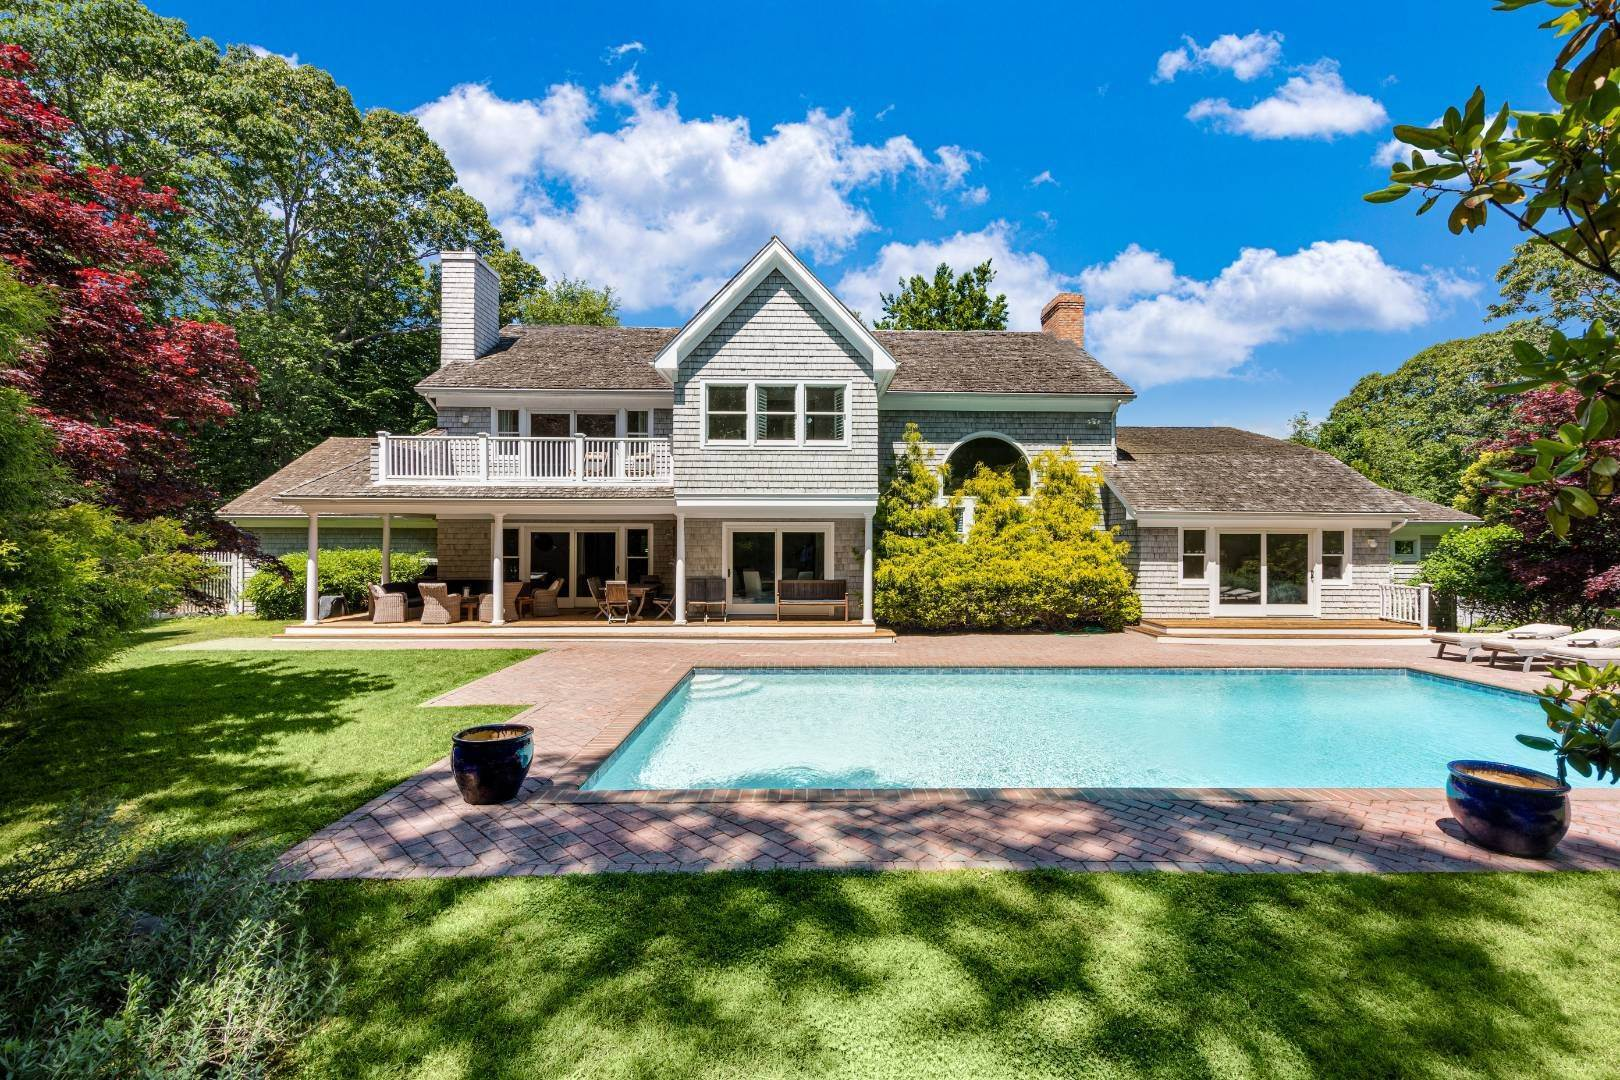 Single Family Home for Sale at 23 On The Bluff, Sag Harbor, NY 11963